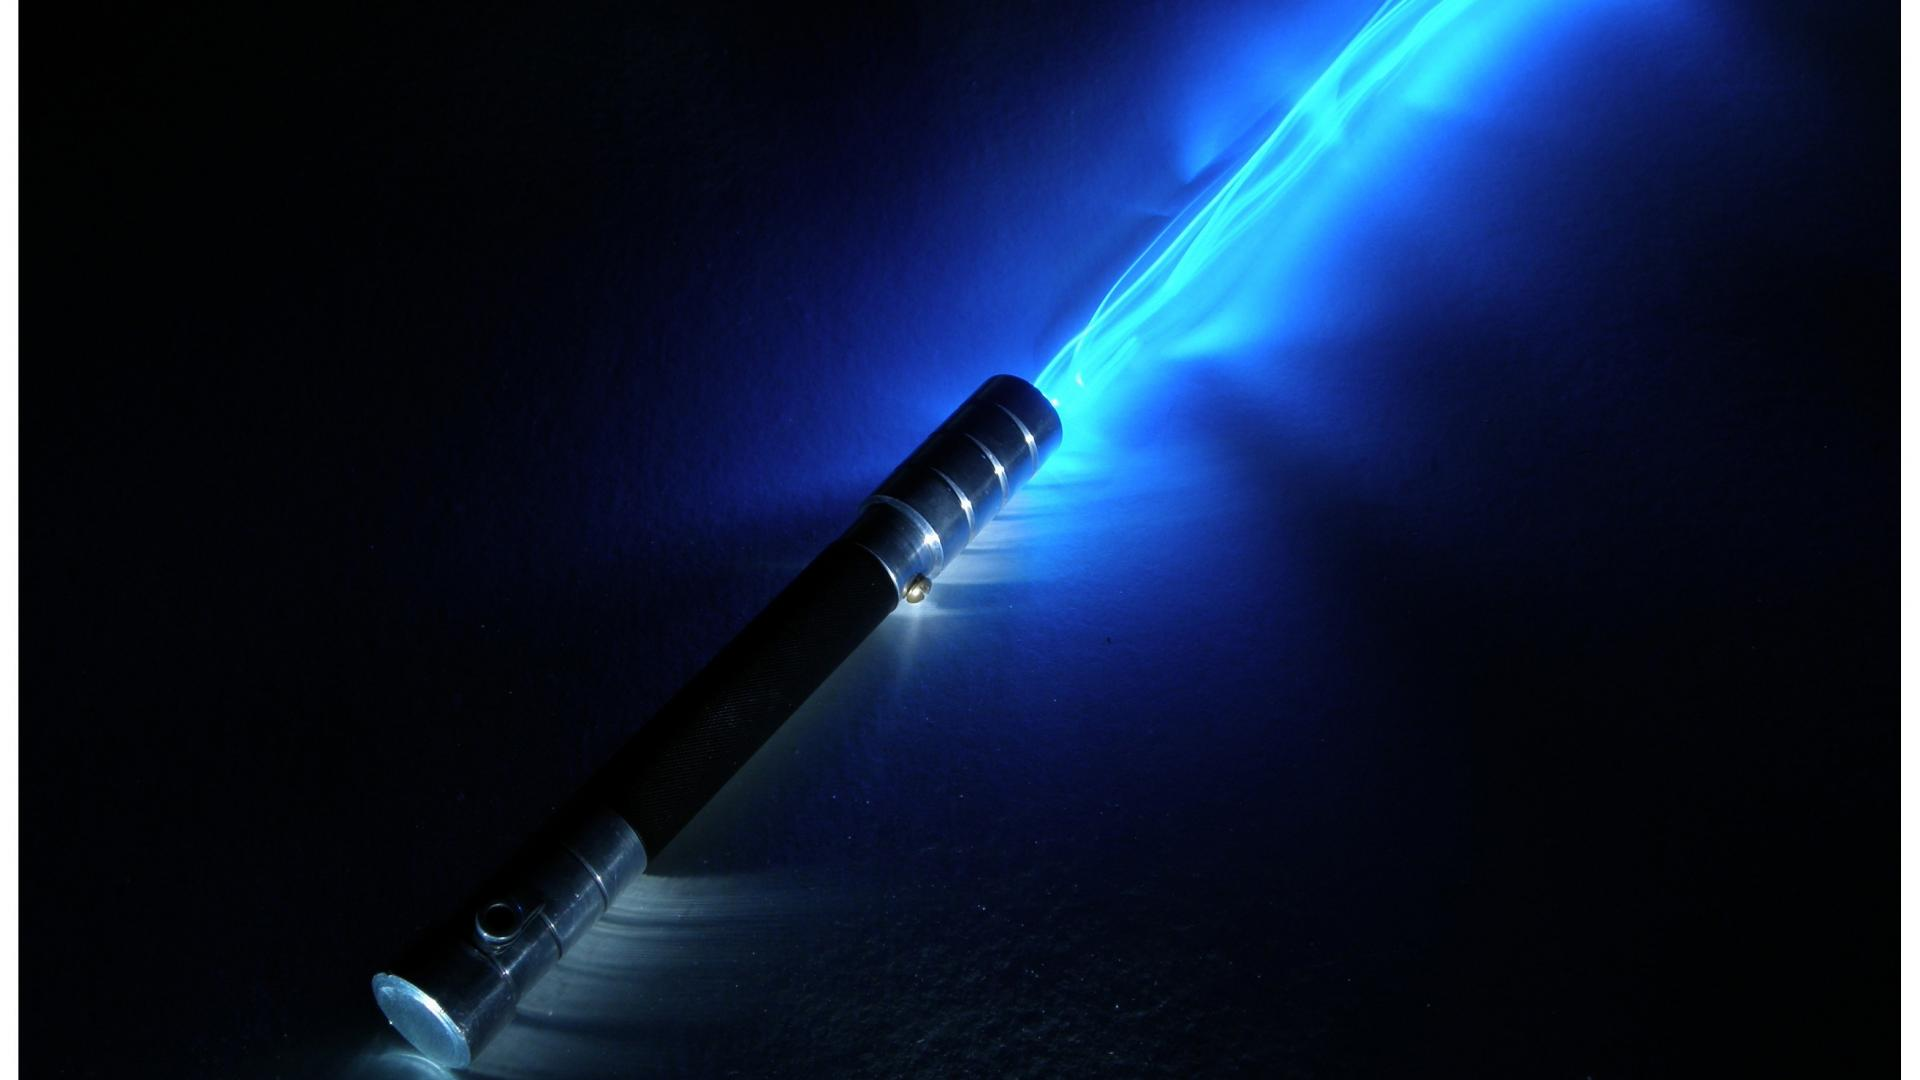 Download Lightsaber Wallpaper Hd Backgrounds Download Itl Cat